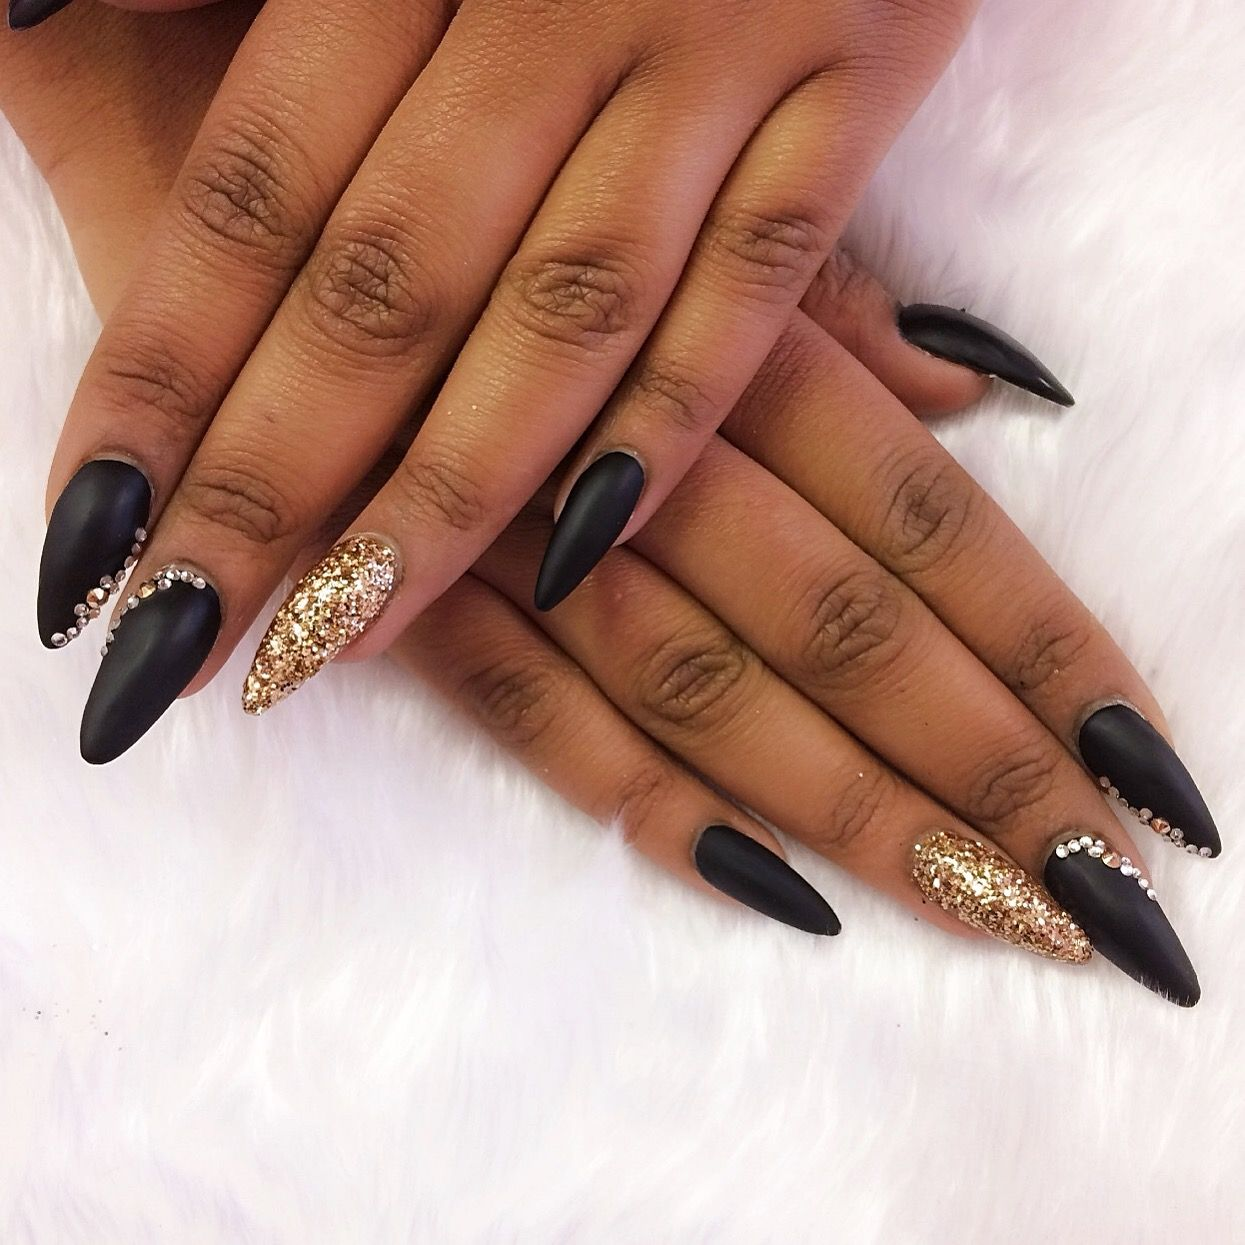 Gold For Prom Nail Ideas: Stiletto Nails In Matte Black With Gold Glitter And